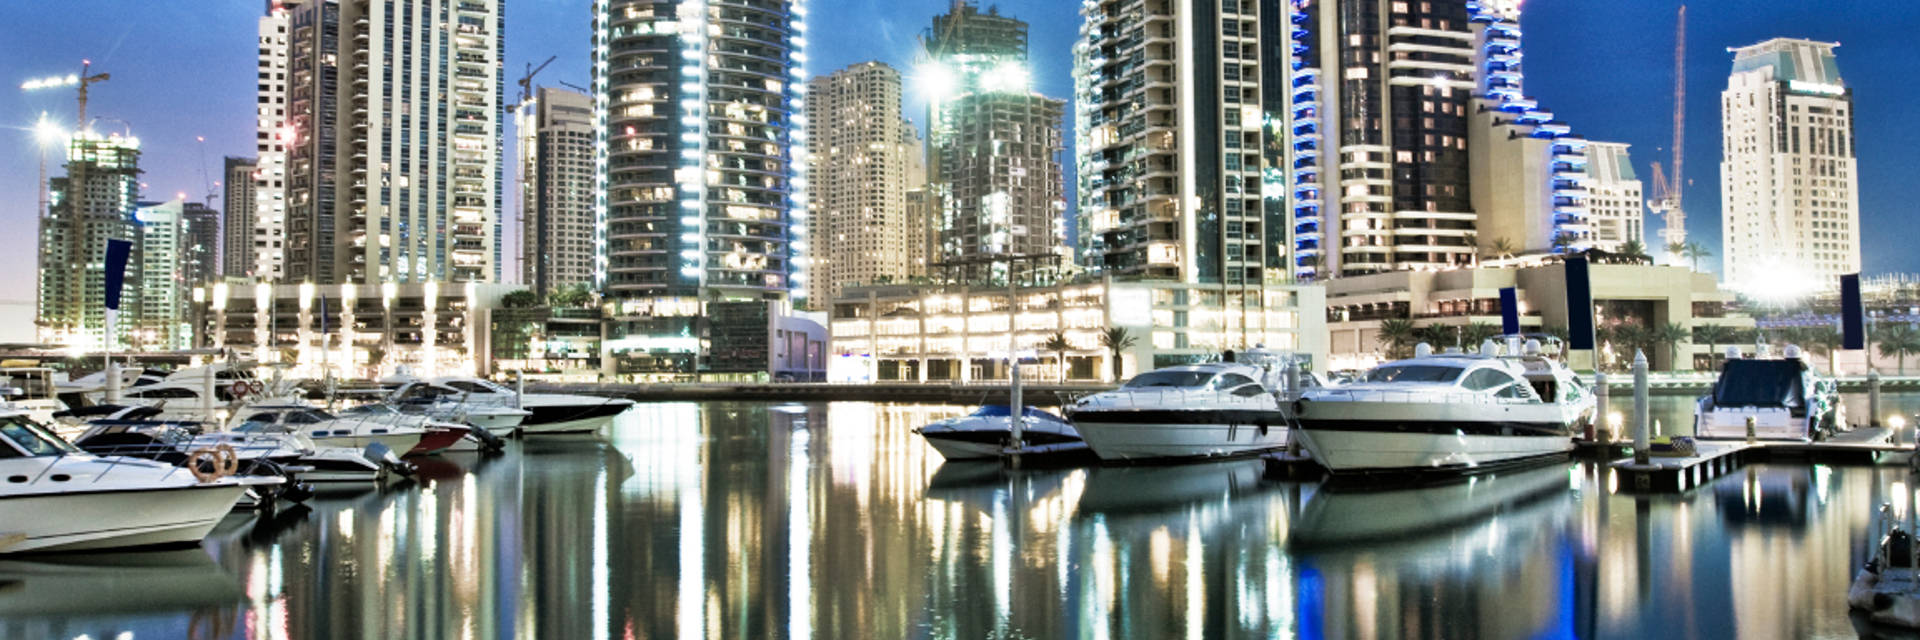 Real estate in Dubai - DUBAI MARINA